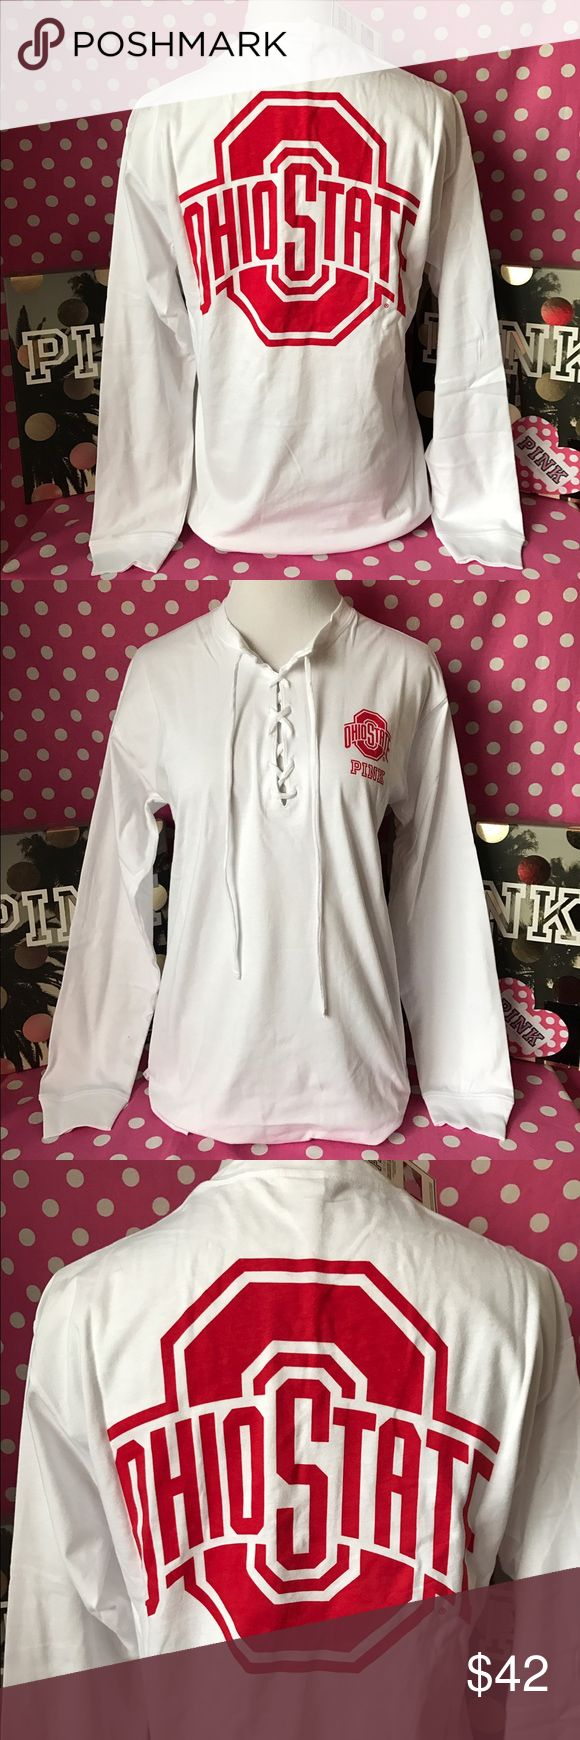 """🆕NWT VS PINK OSU Buckeyes lace up campus tee 💖Thanks for shopping at Candy Land!💖  ✅NWT VS PINK Ohio State Buckeyes lace up campus tee.   ‼️PRICES ARE FIRM ~ My items are priced at the lowest already. Please do not ask """"lowest"""". Remember Posh takes a fee 😩.    ⭐️LOTS OF NWT VS PINK items for sale on my page! ⛔️PLEASE NOTE: NWT= New with tags OR New in online bag. PINK online orders come in bags with NO tags.  🚫NO HOLDS   🚫NO MODELING 🚫I DON'T TRADE ✋LOWBALLS WILL BE IGNORED ✋RUDE…"""